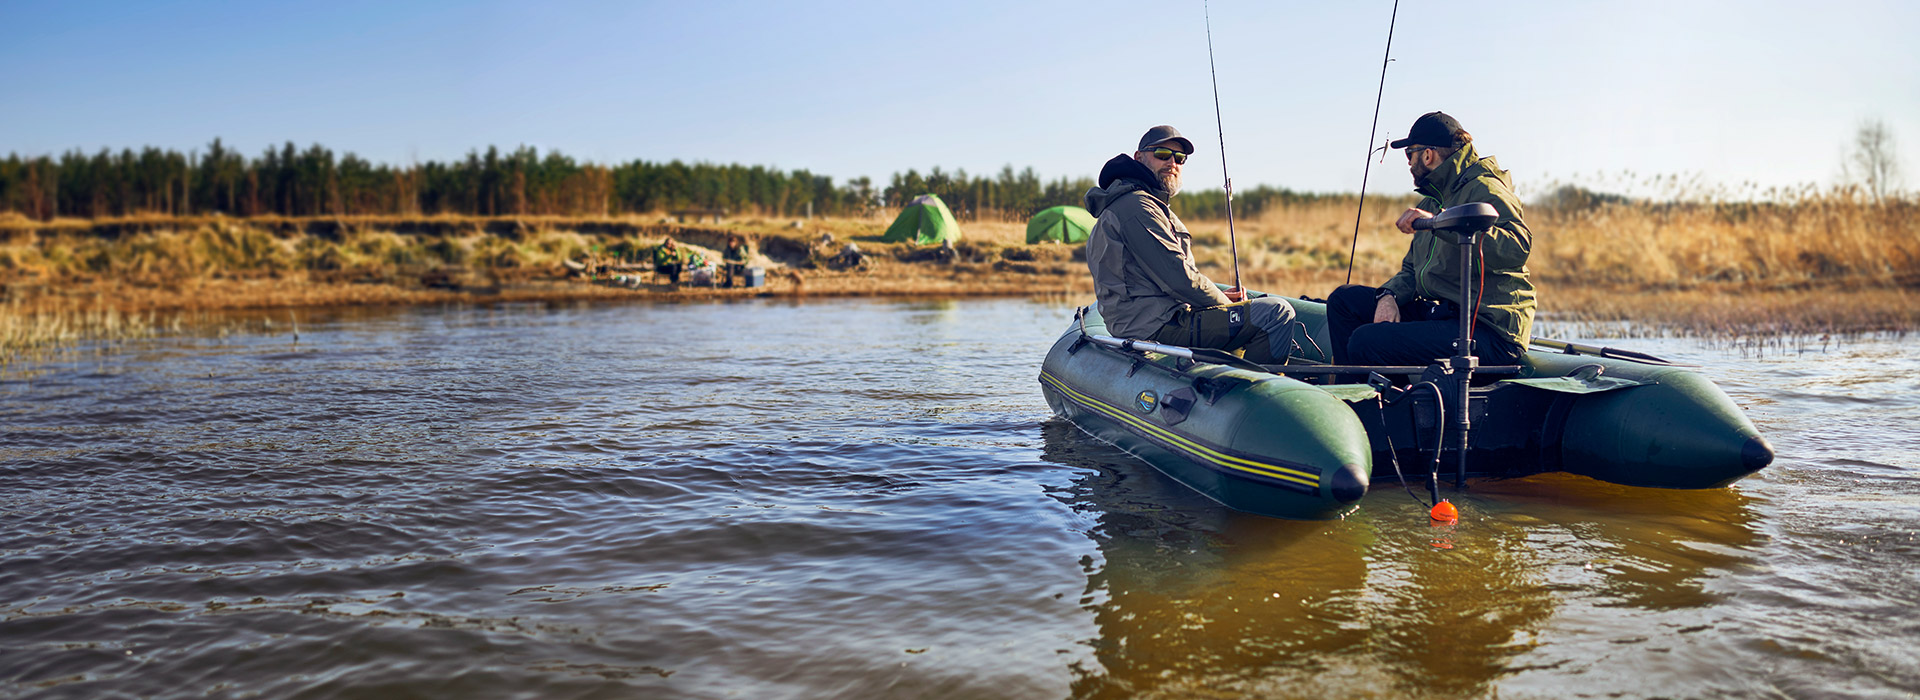 Stay local, pack your rods and enjoy the nature!Deeper sonar from R 3,349.00